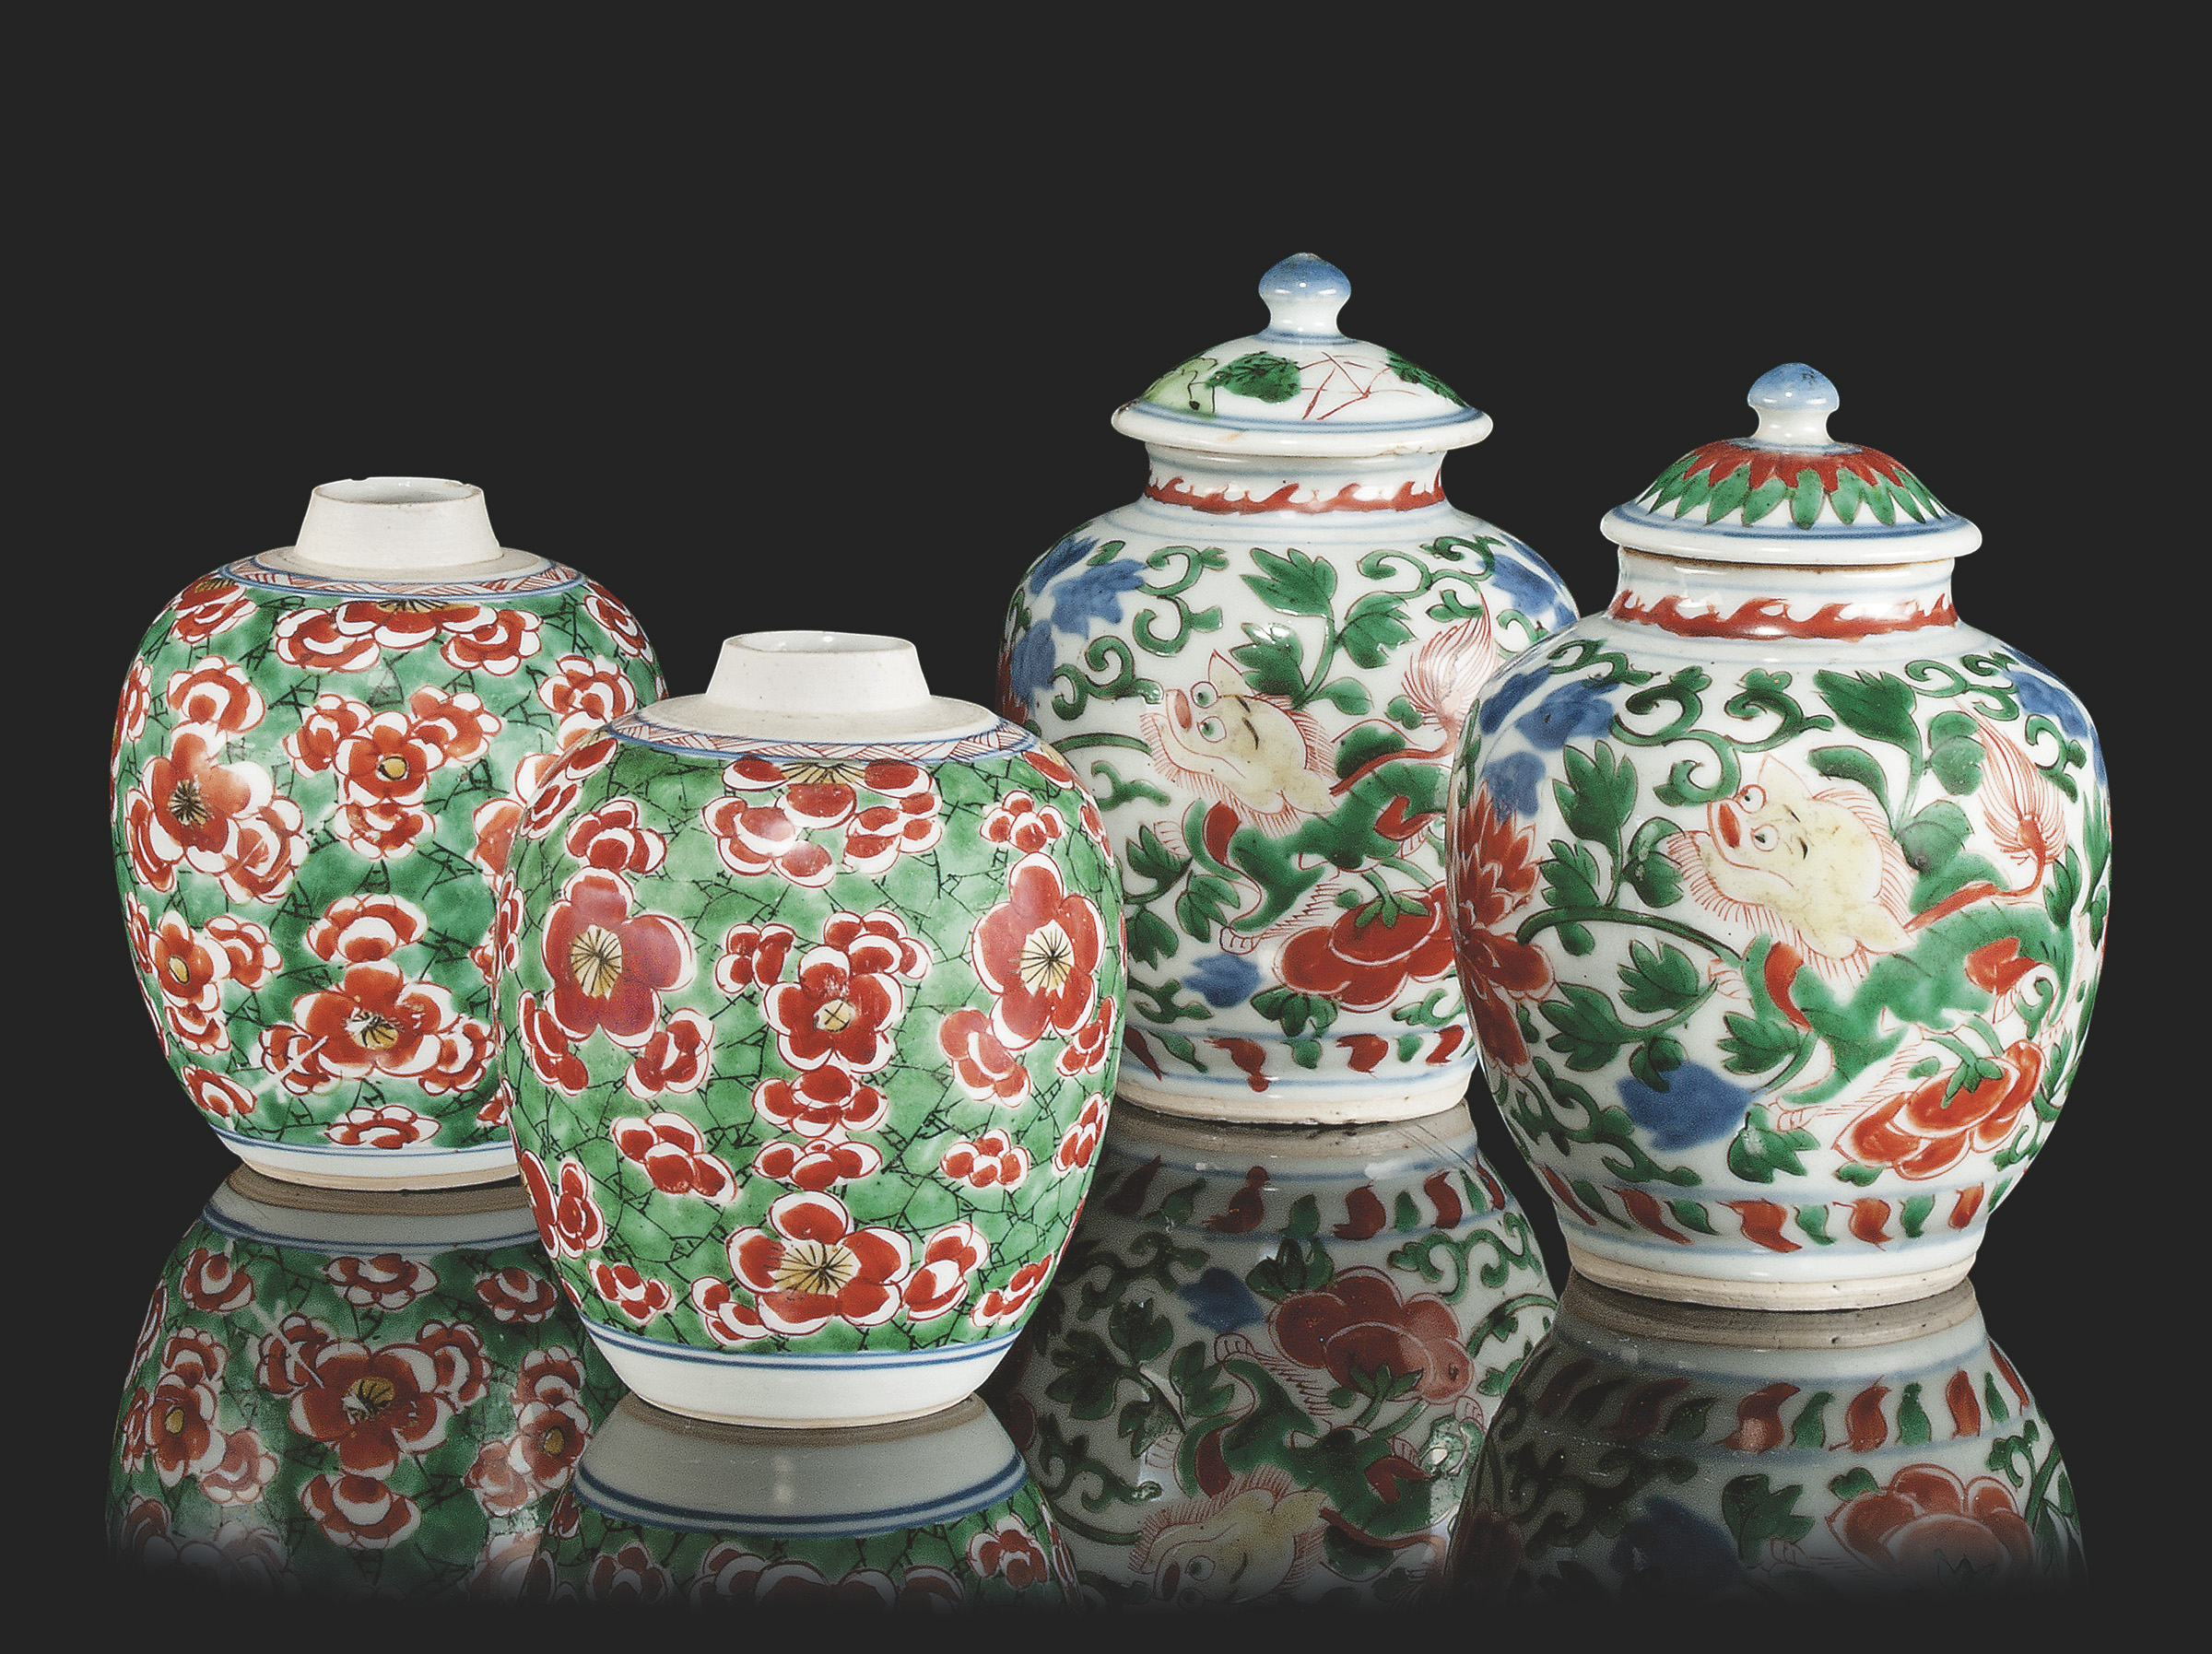 TWO PAIRS OF CHINESE OVOID JAR